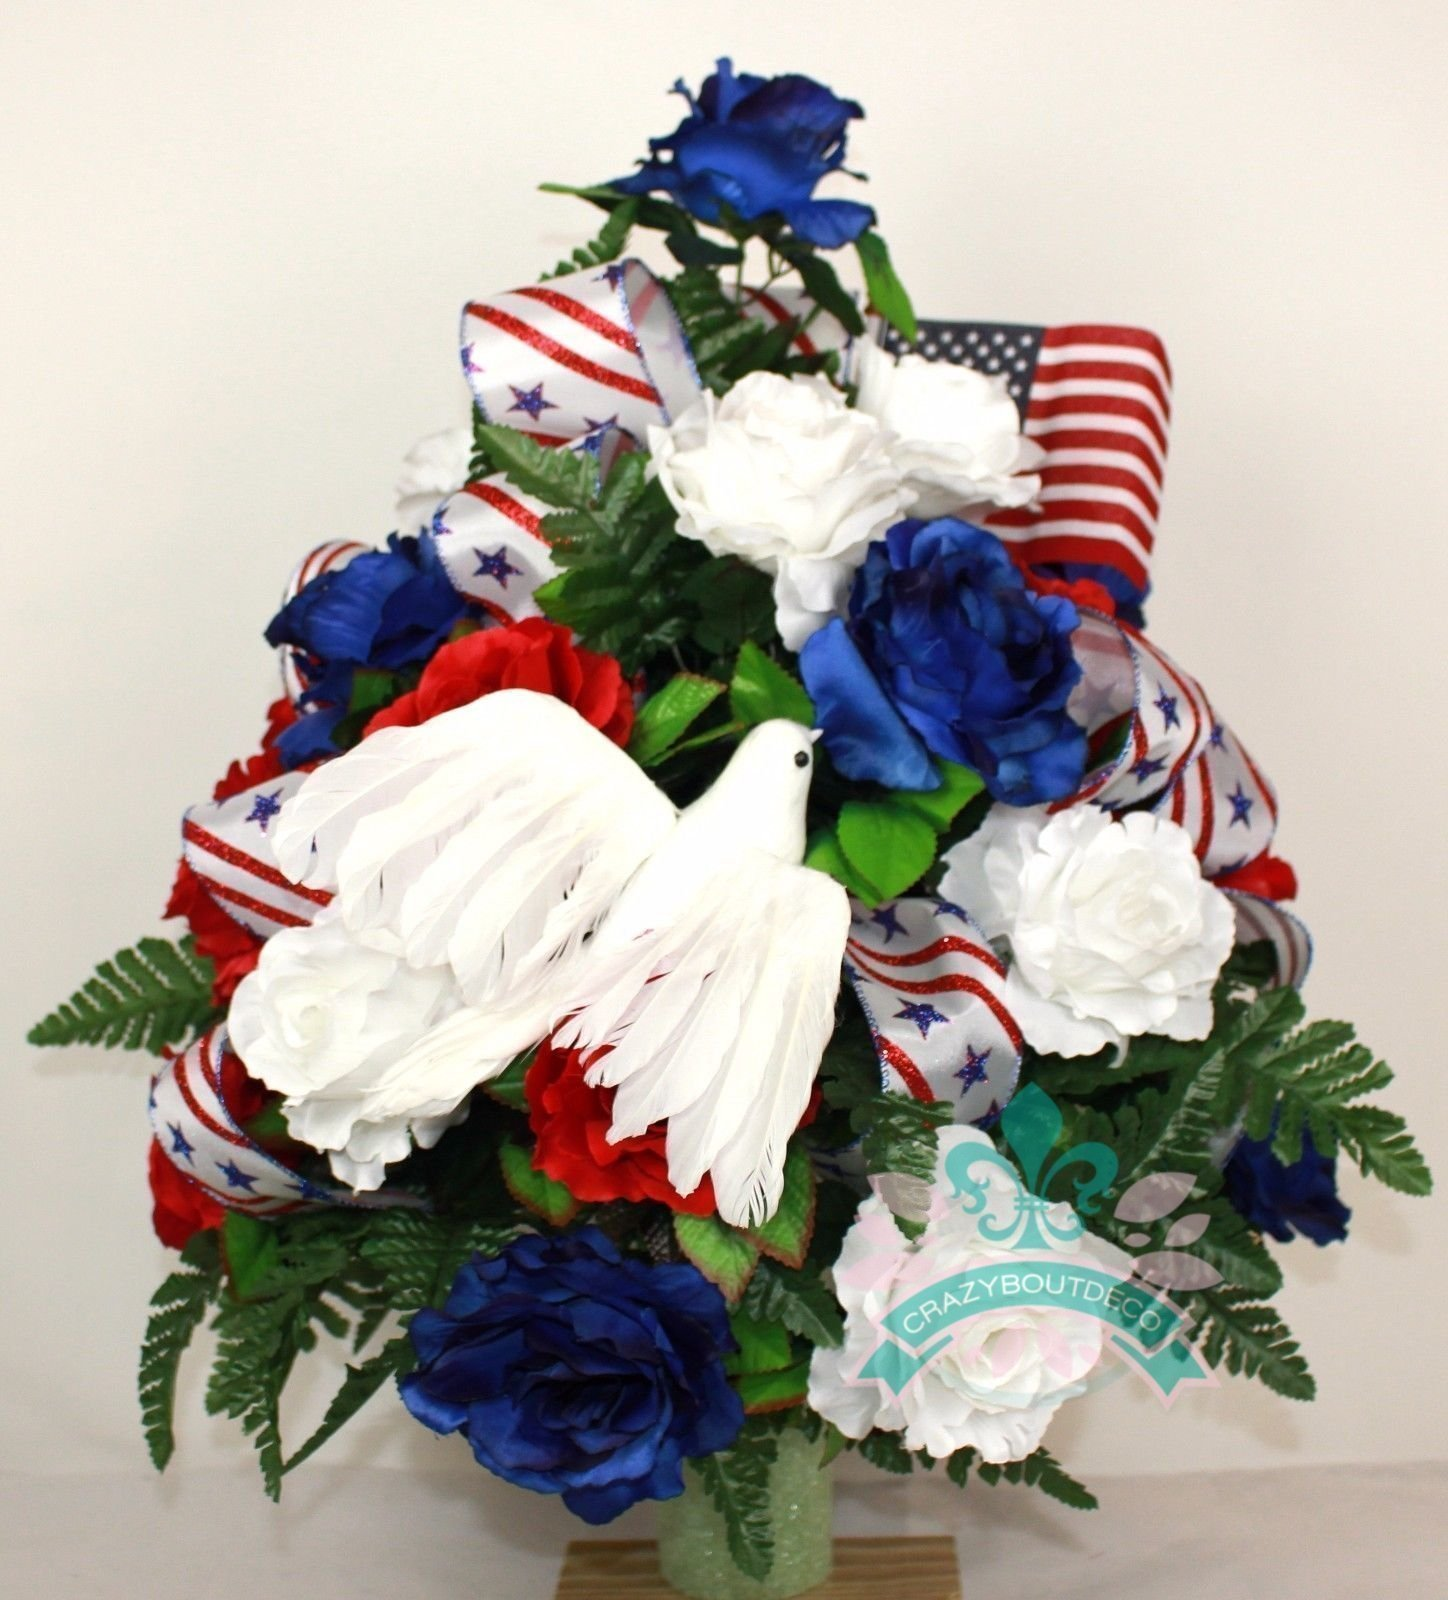 XL-Patriotic-3-inch-Cemetery-Vase-Arrangement-in-Red-White-and-Blue-Roses